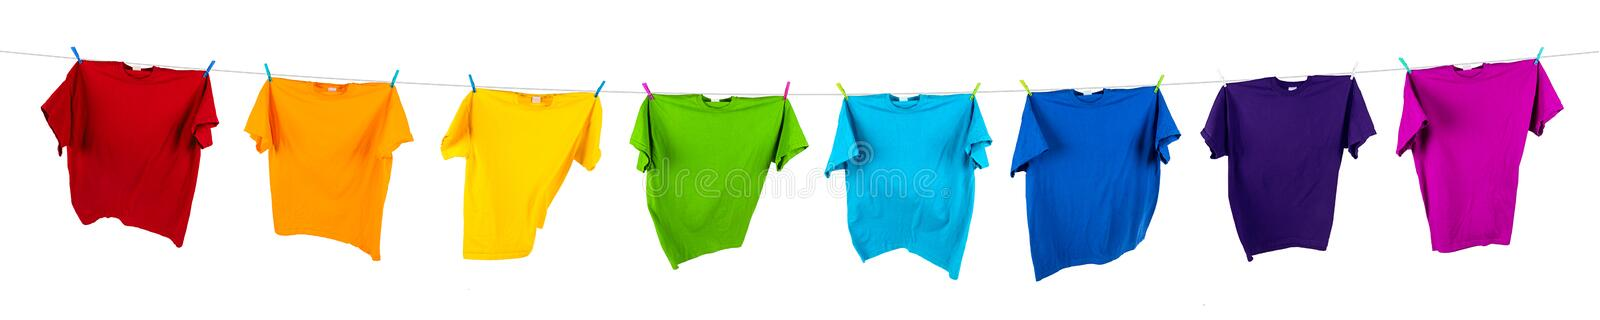 Rainbow shirts on line. Rainbow shirts on washing line